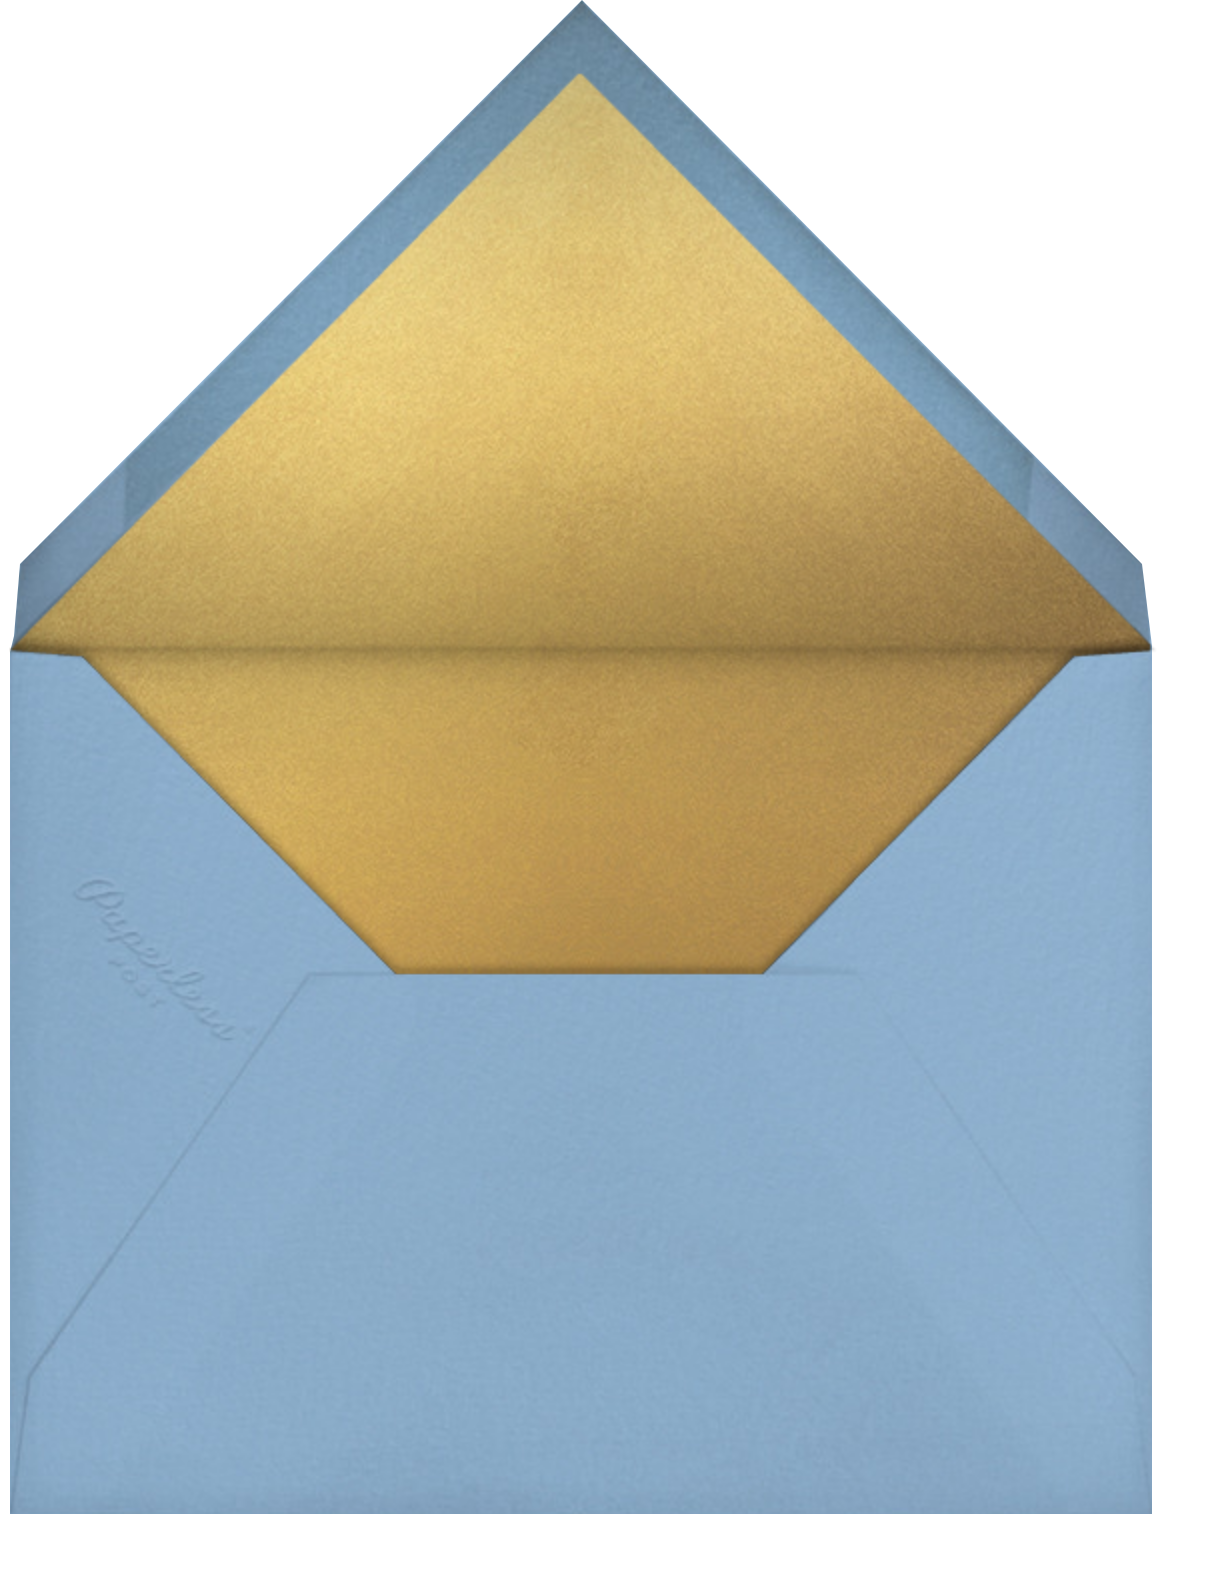 Concentrics - Blue - Paperless Post - Company holiday cards - envelope back